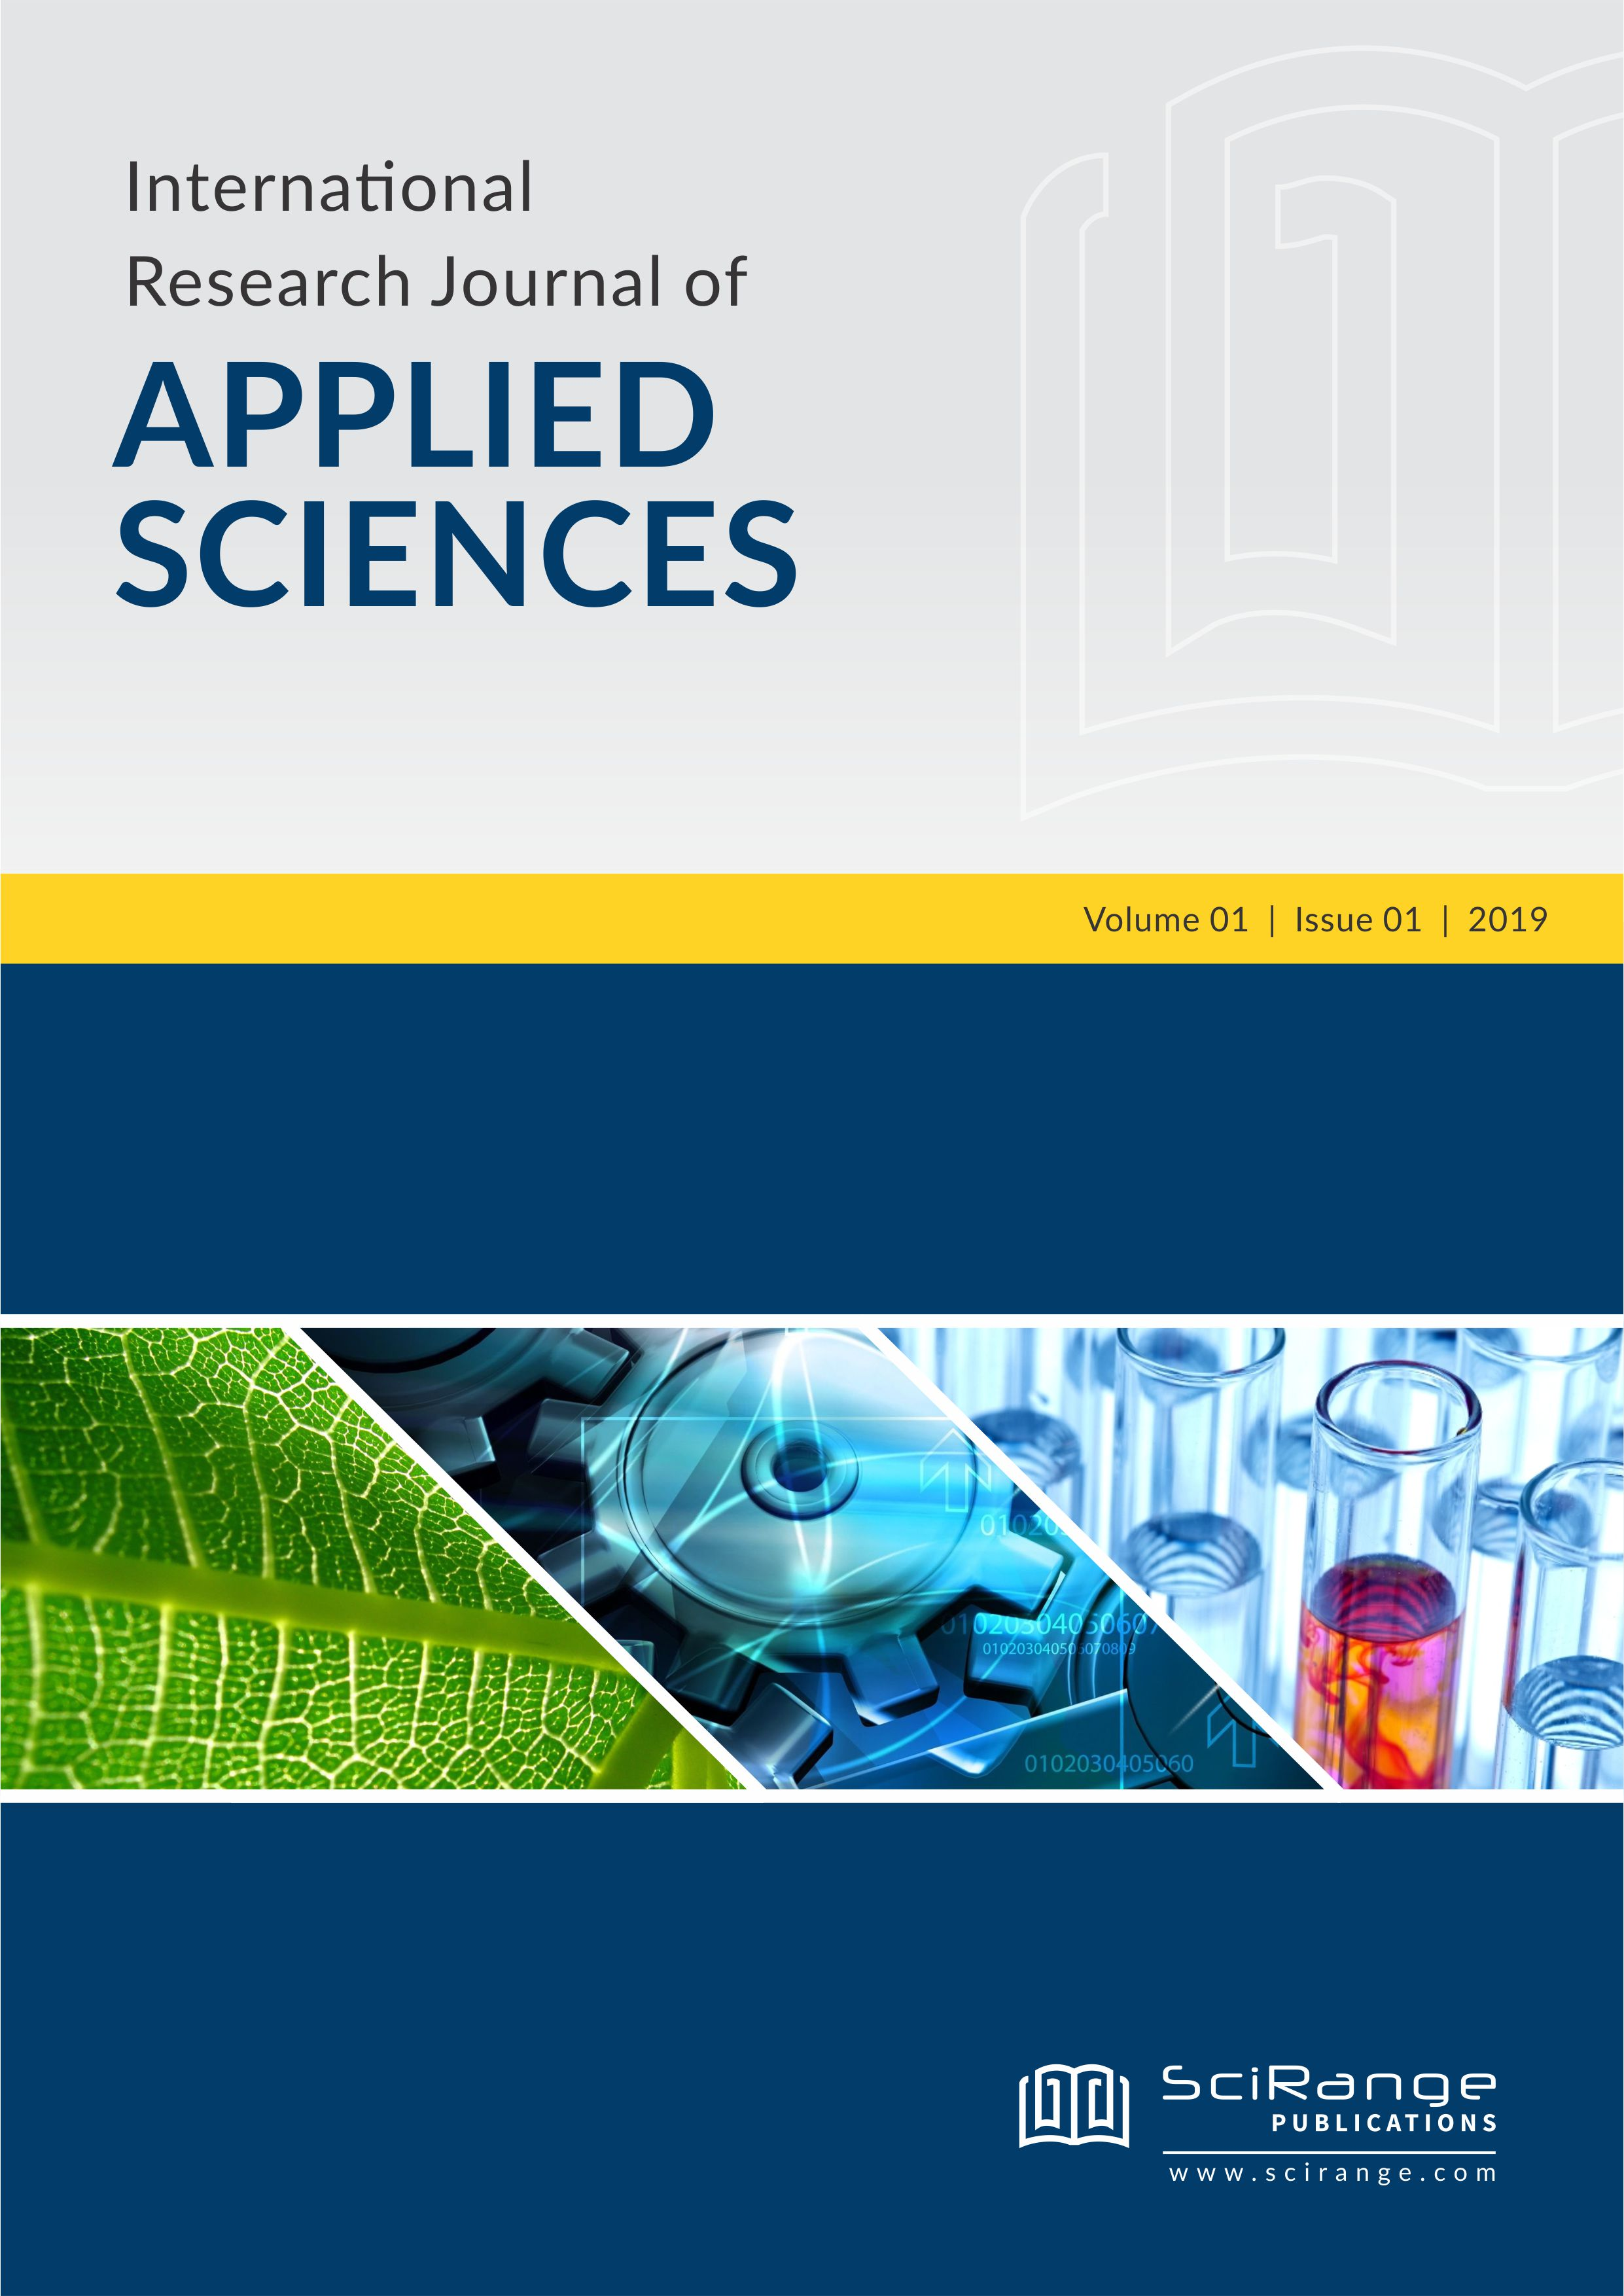 International Research Journal of Applied Sciences